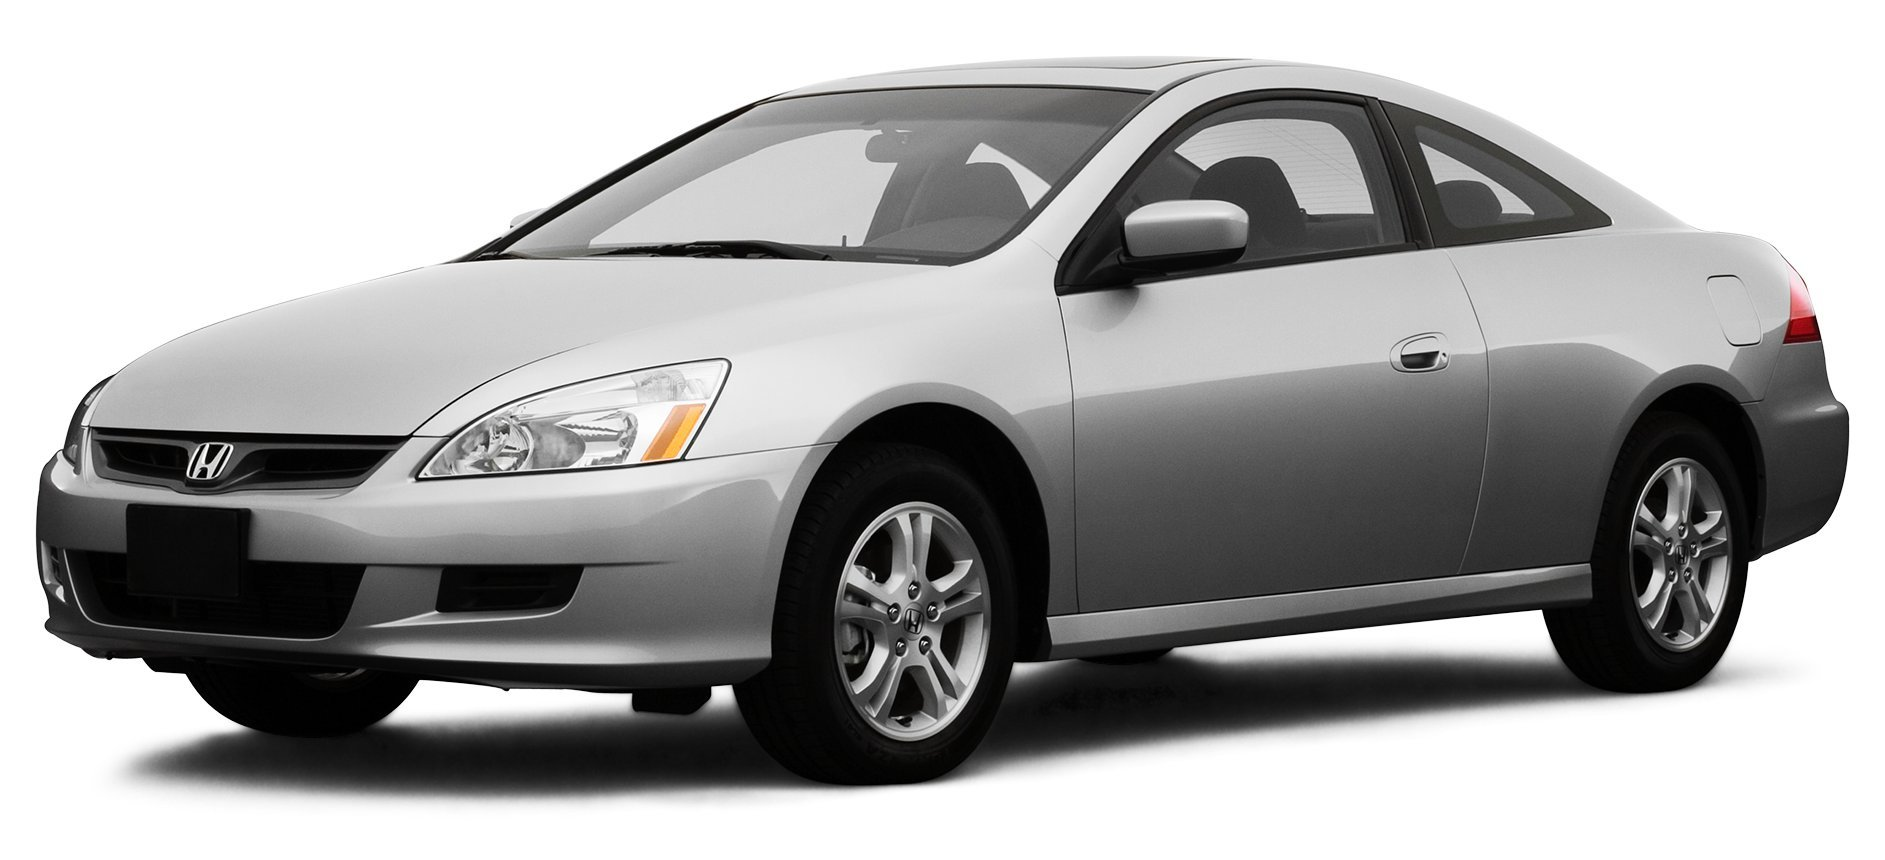 2007 honda accord reviews images and specs. Black Bedroom Furniture Sets. Home Design Ideas